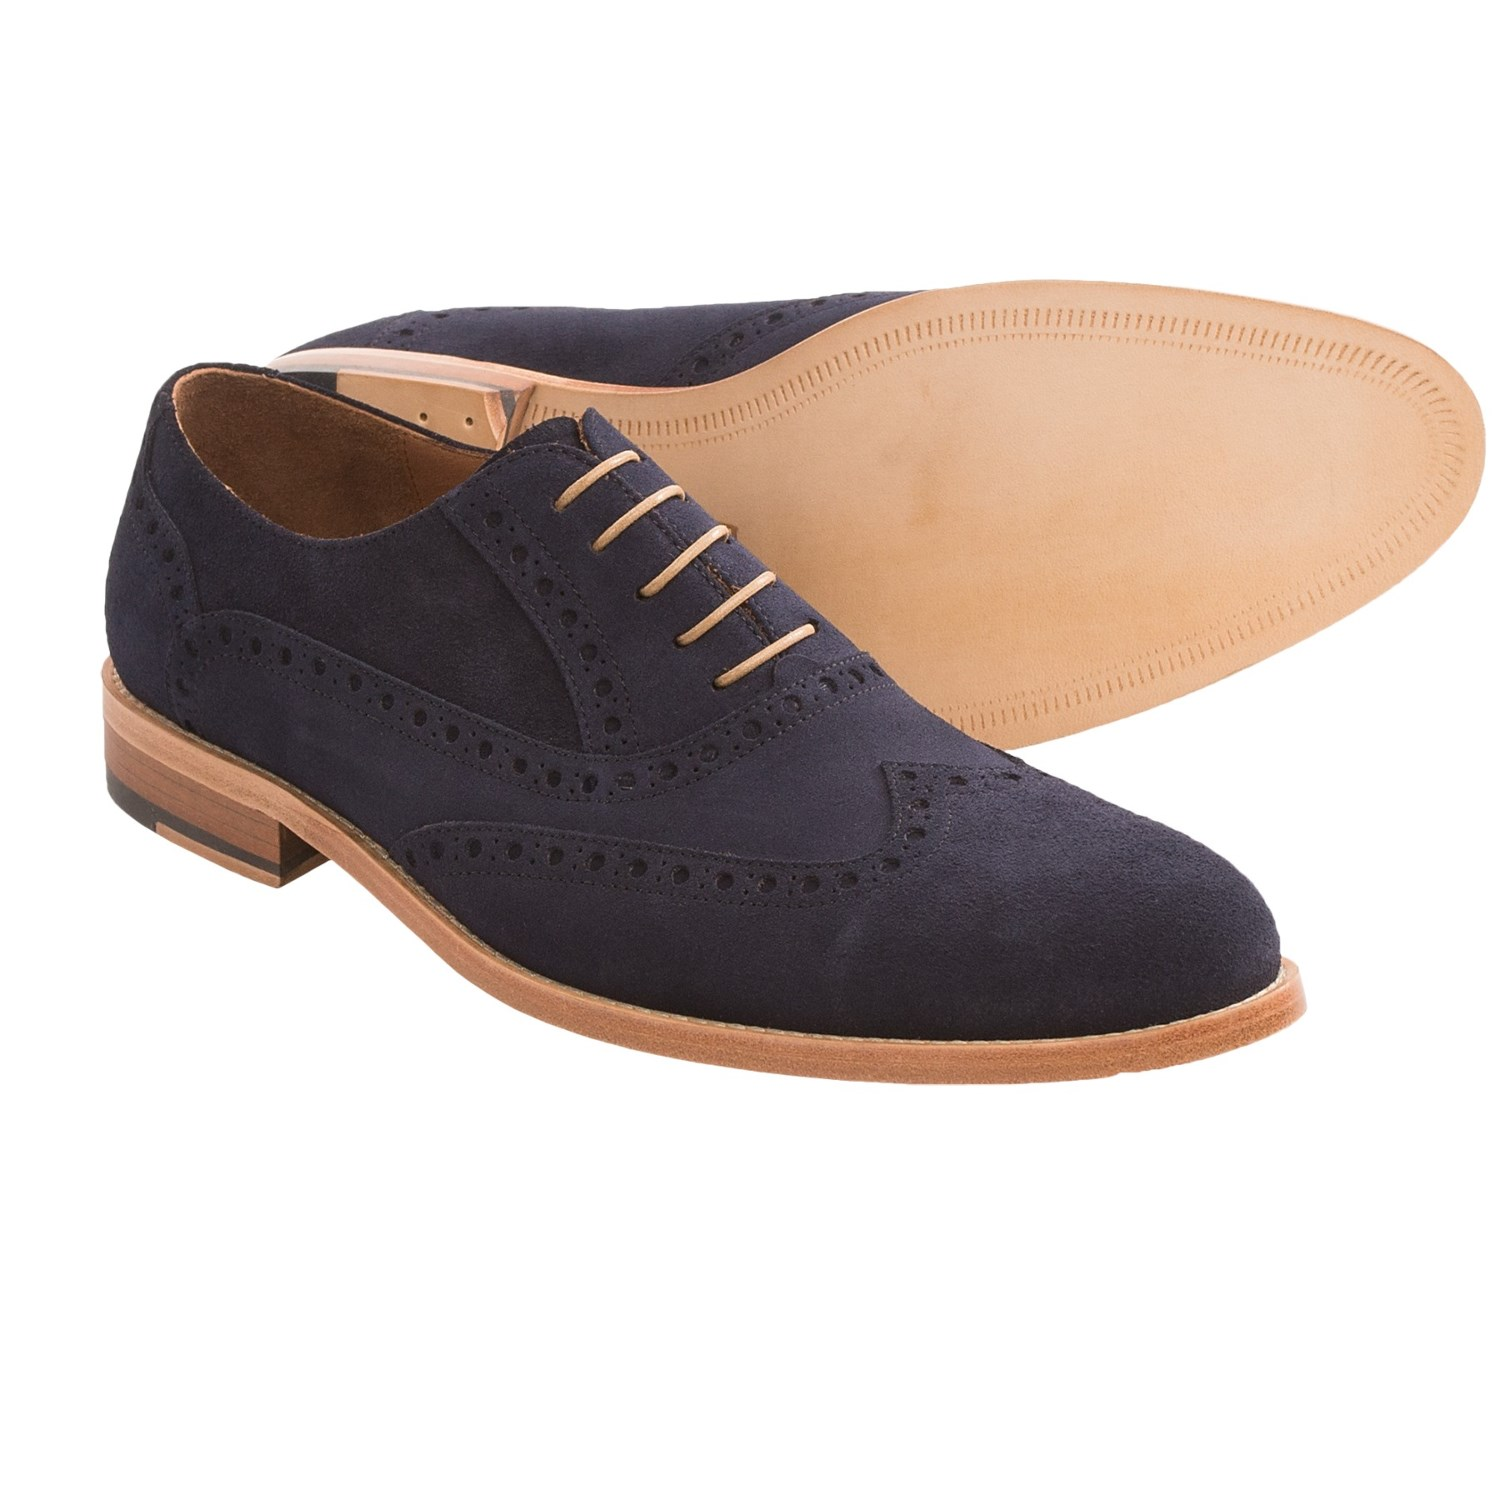 gordon foster suede dress shoes wingtip for